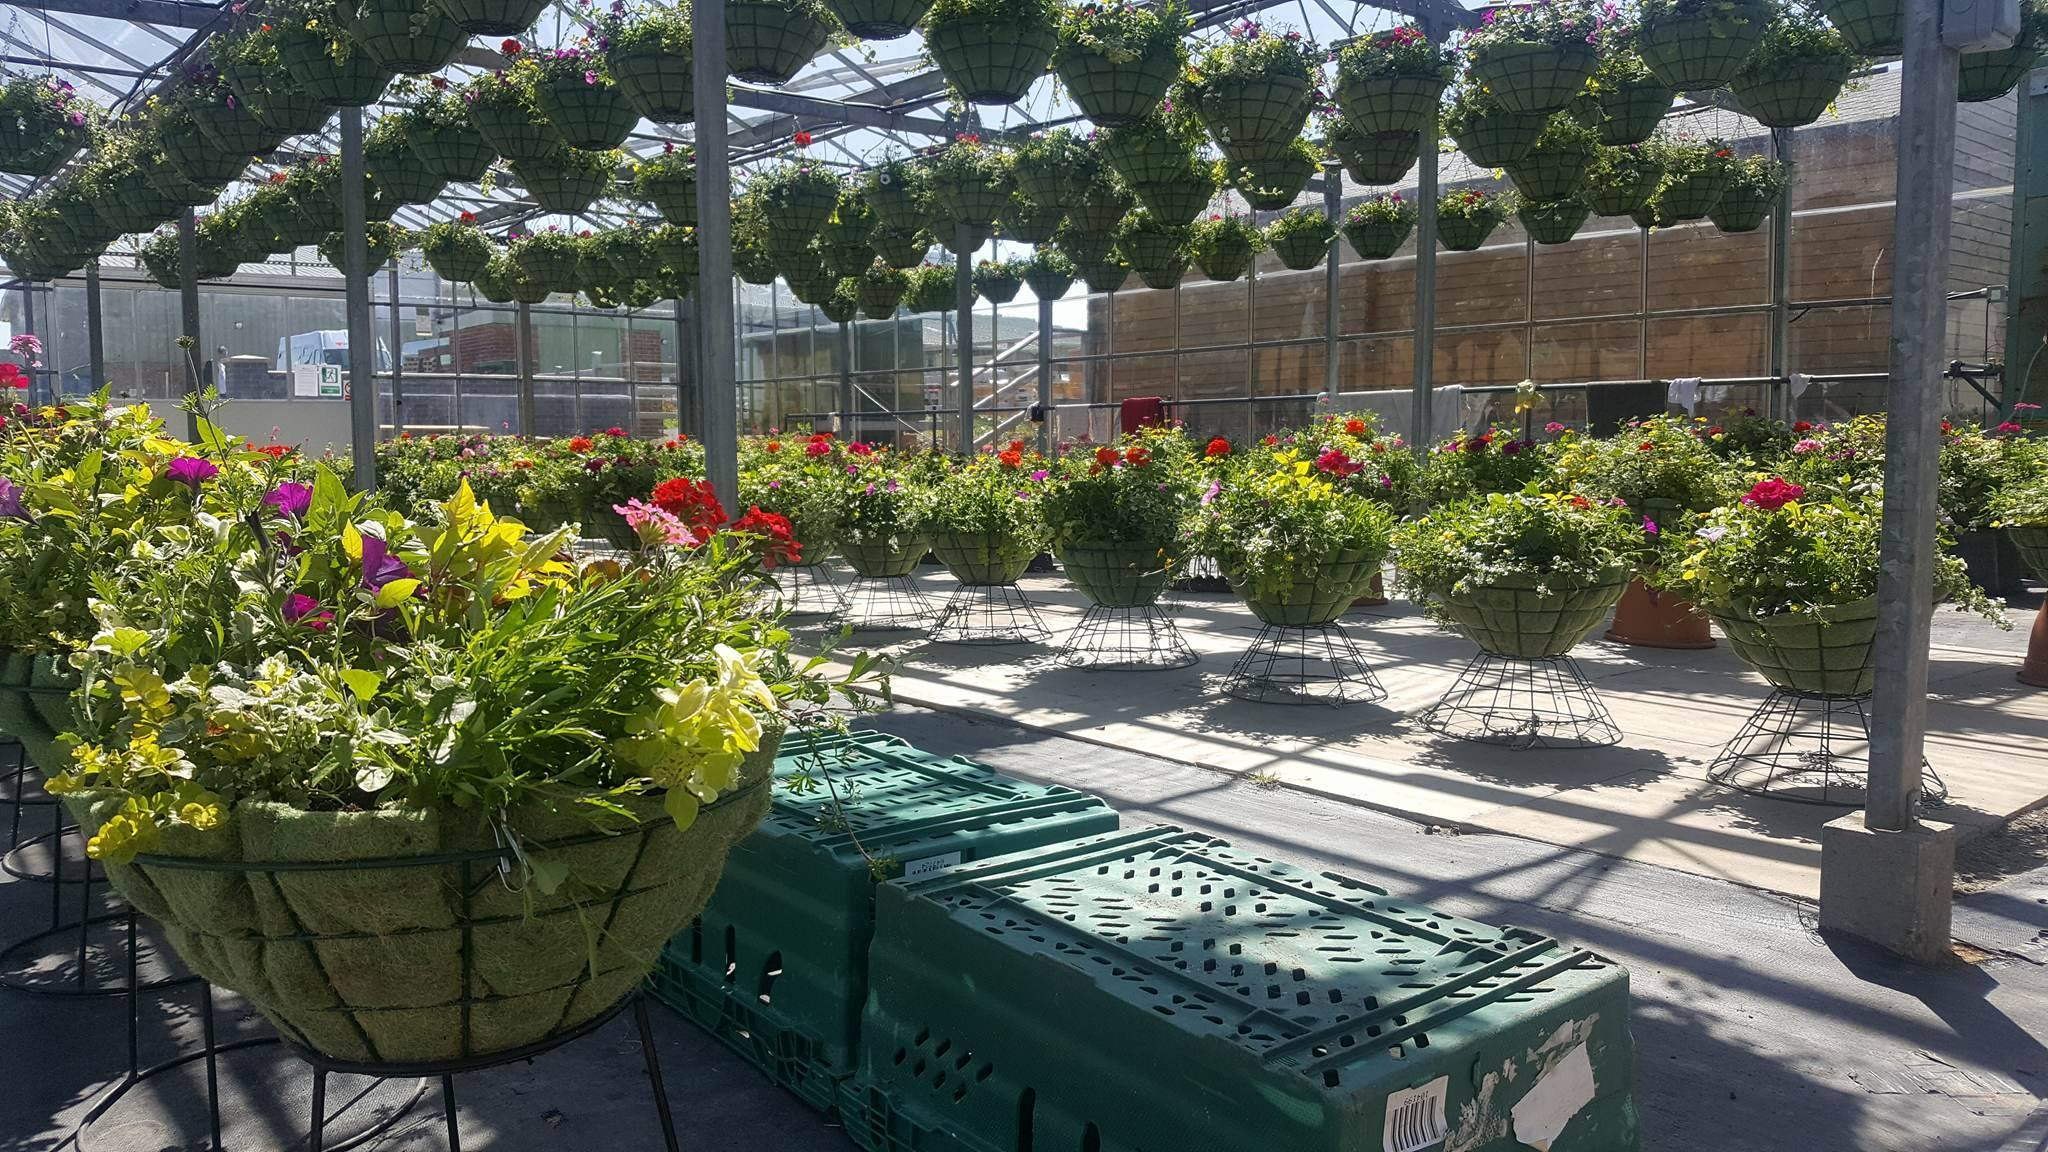 Hanging Baskets and Bedding Plants